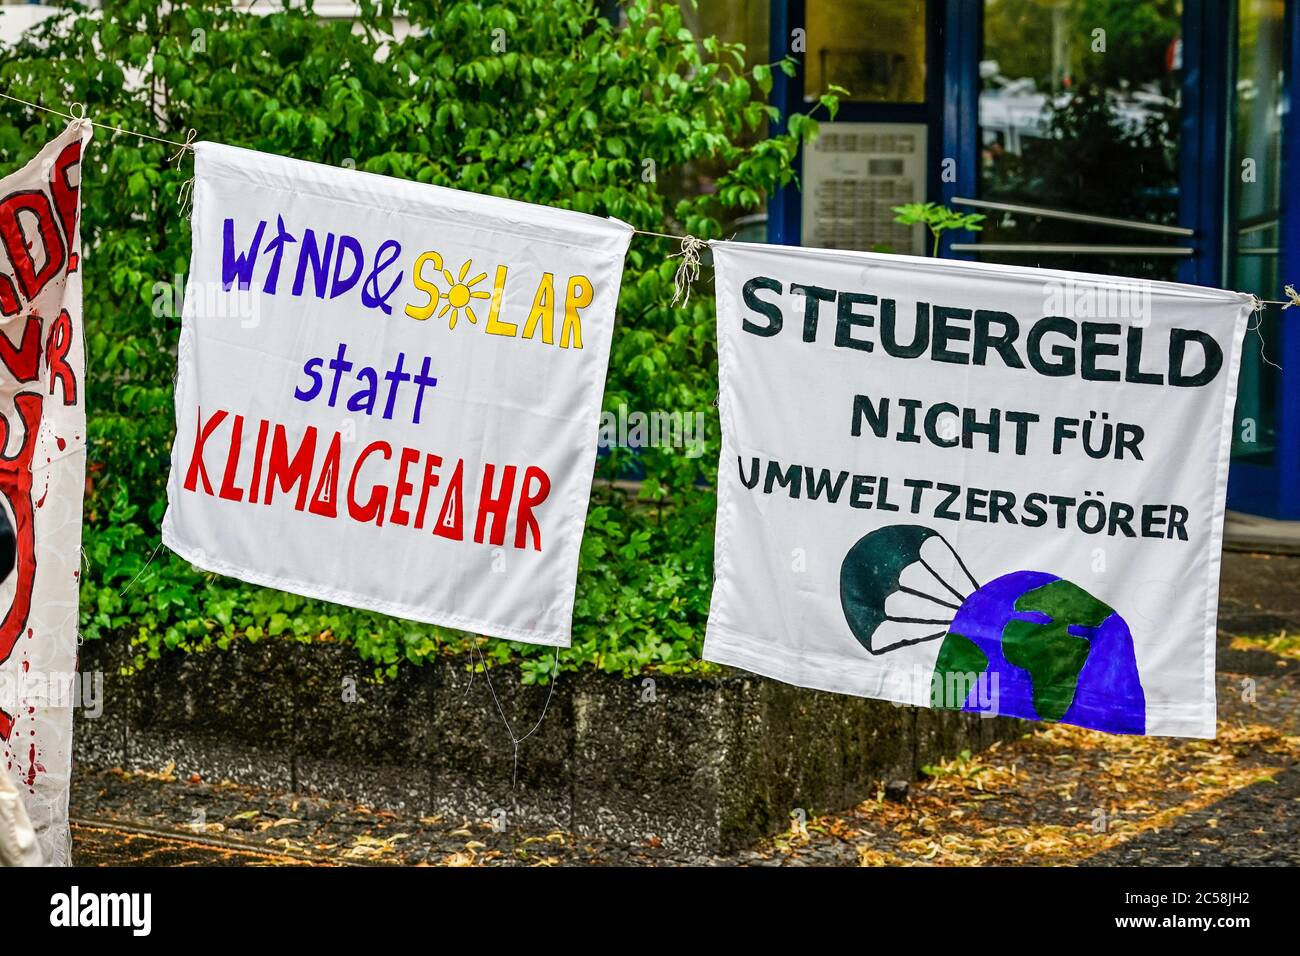 """01.07.2020, Berlin, while in the Klingelhoferstrasse the CDU headquarters were blocked by Greenpeace activists with black cloths, another coal demonstration took place in front of the Willy-Brandt-Haus, the party headquarters of the coalition partner SPD. With this campaign, the demonstrators want to draw attention to dirty coal deals by the grand coalition with the coal industry, which are questioning compliance with the Paris climate agreement. Photo of two banners with the inscription: """"Wind & Solar instead of climate risk"""" and """"Tax money not for environmental destroyers"""".   usage worldwide Stock Photo"""